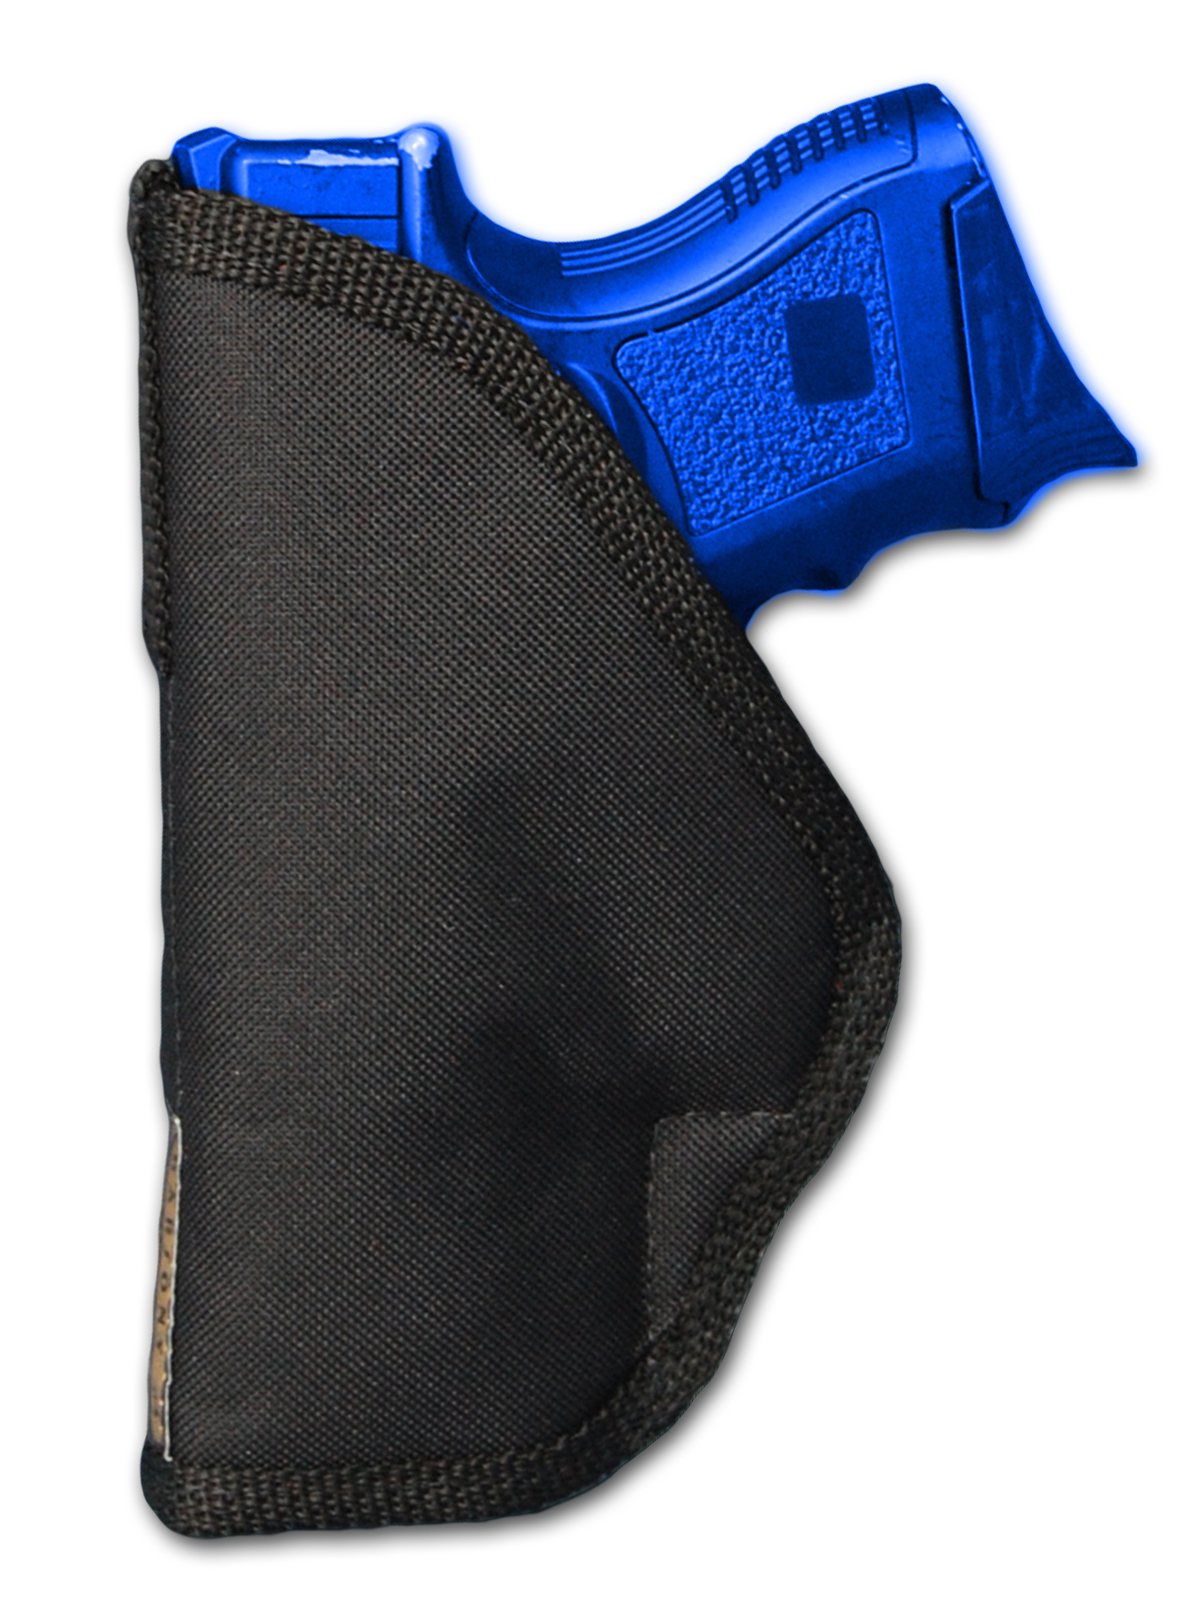 NEW Barsony IWB Gun Holster + Mag Pouch for S&W M&P Shield with LASER, Crimson